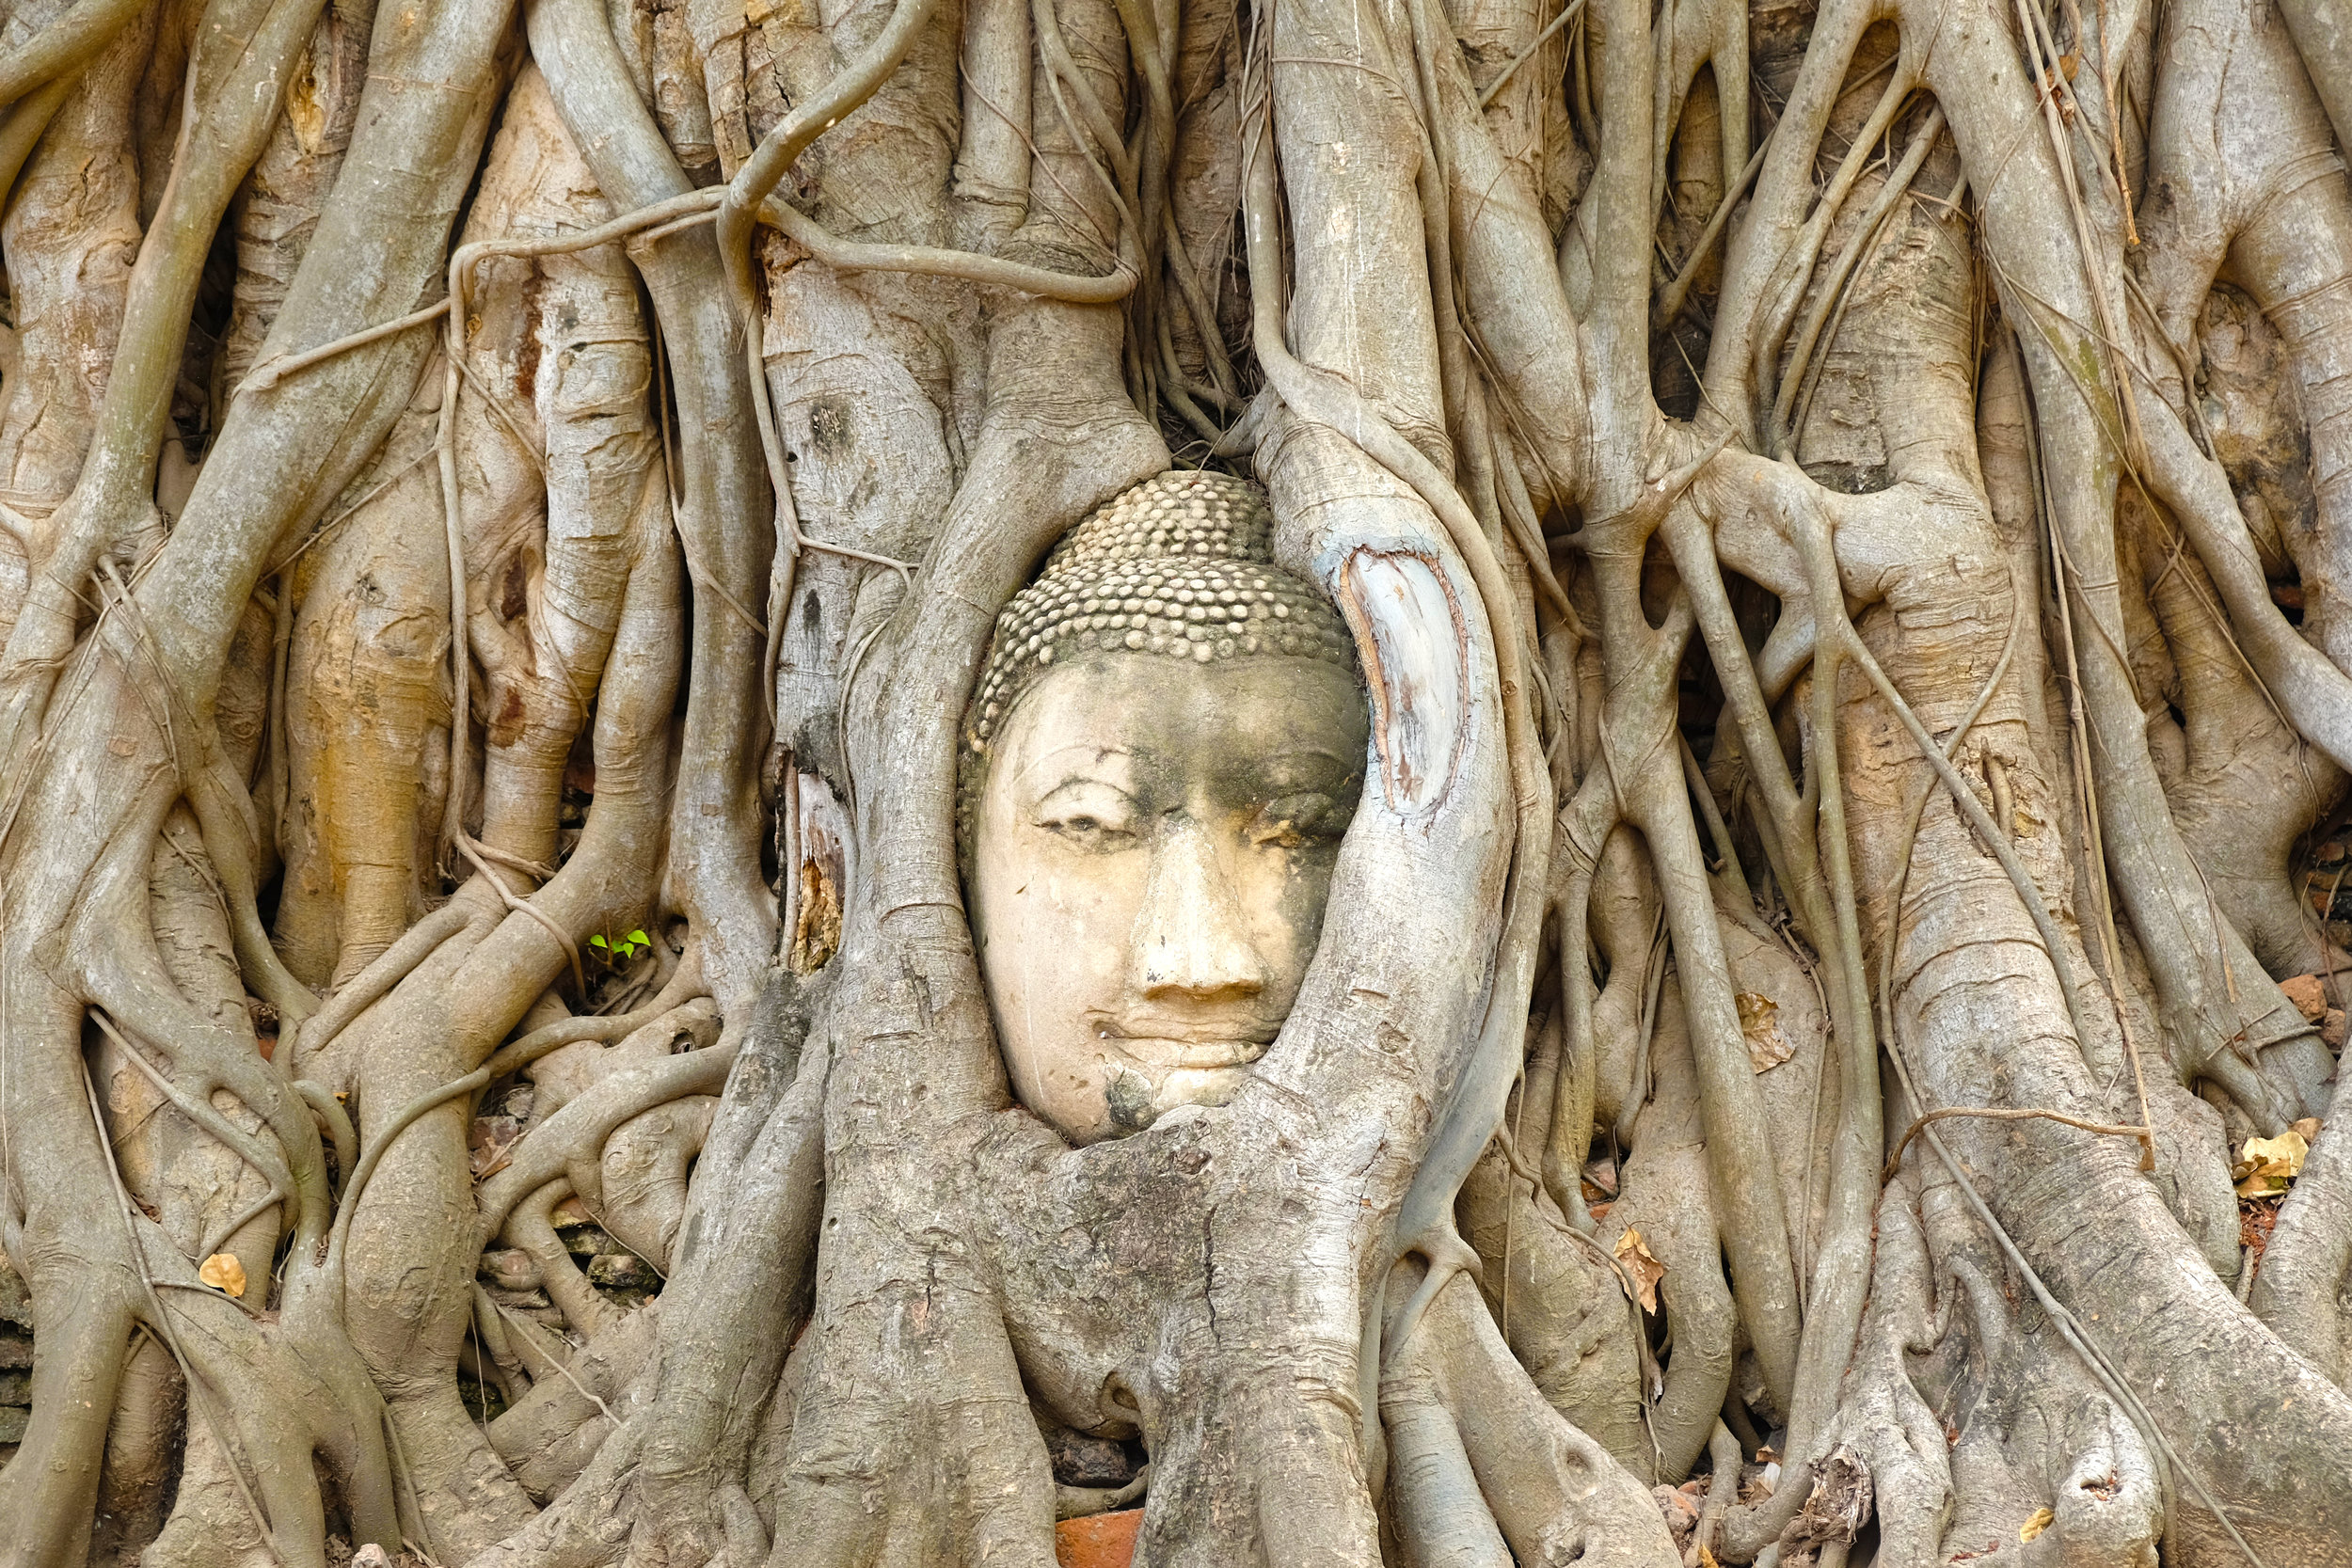 Secret Buddha head at Ayutthaya (Hint: Look for the crowds to find the secret Buddha head)